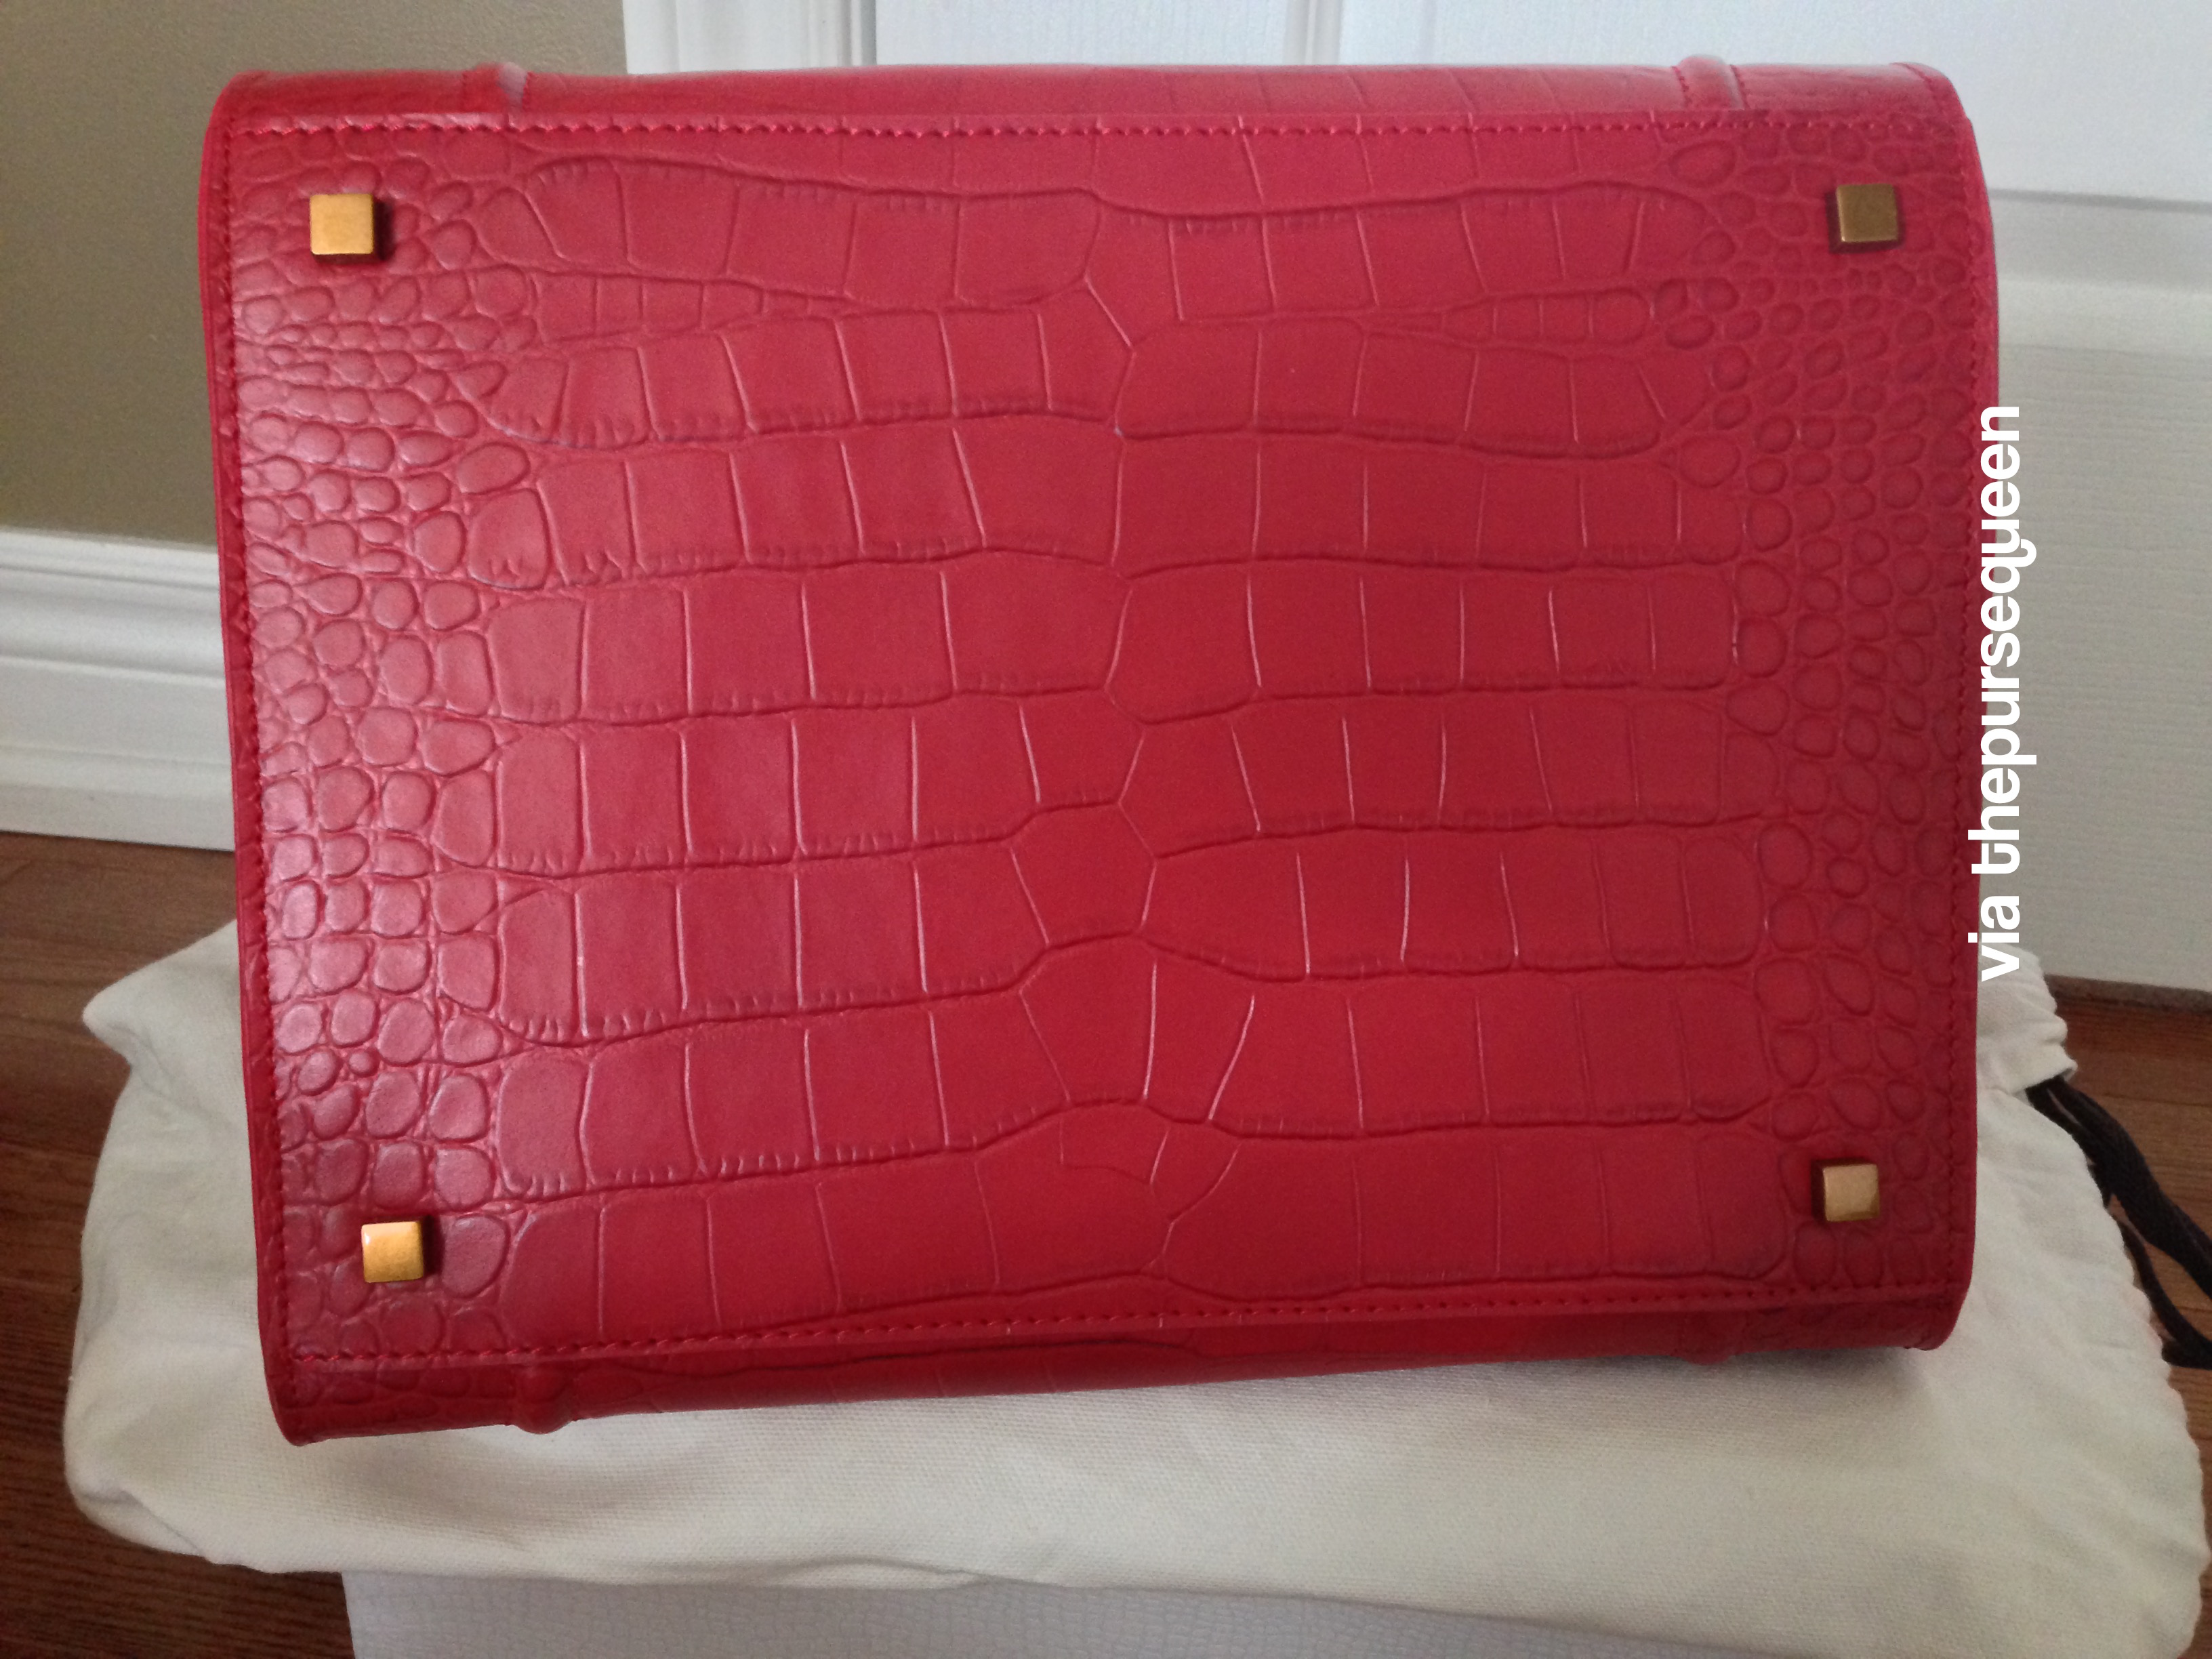 May 2015 \u2013 Authentic \u0026amp; Replica Bags \u0026amp; Replica Handbags Reviews by ...